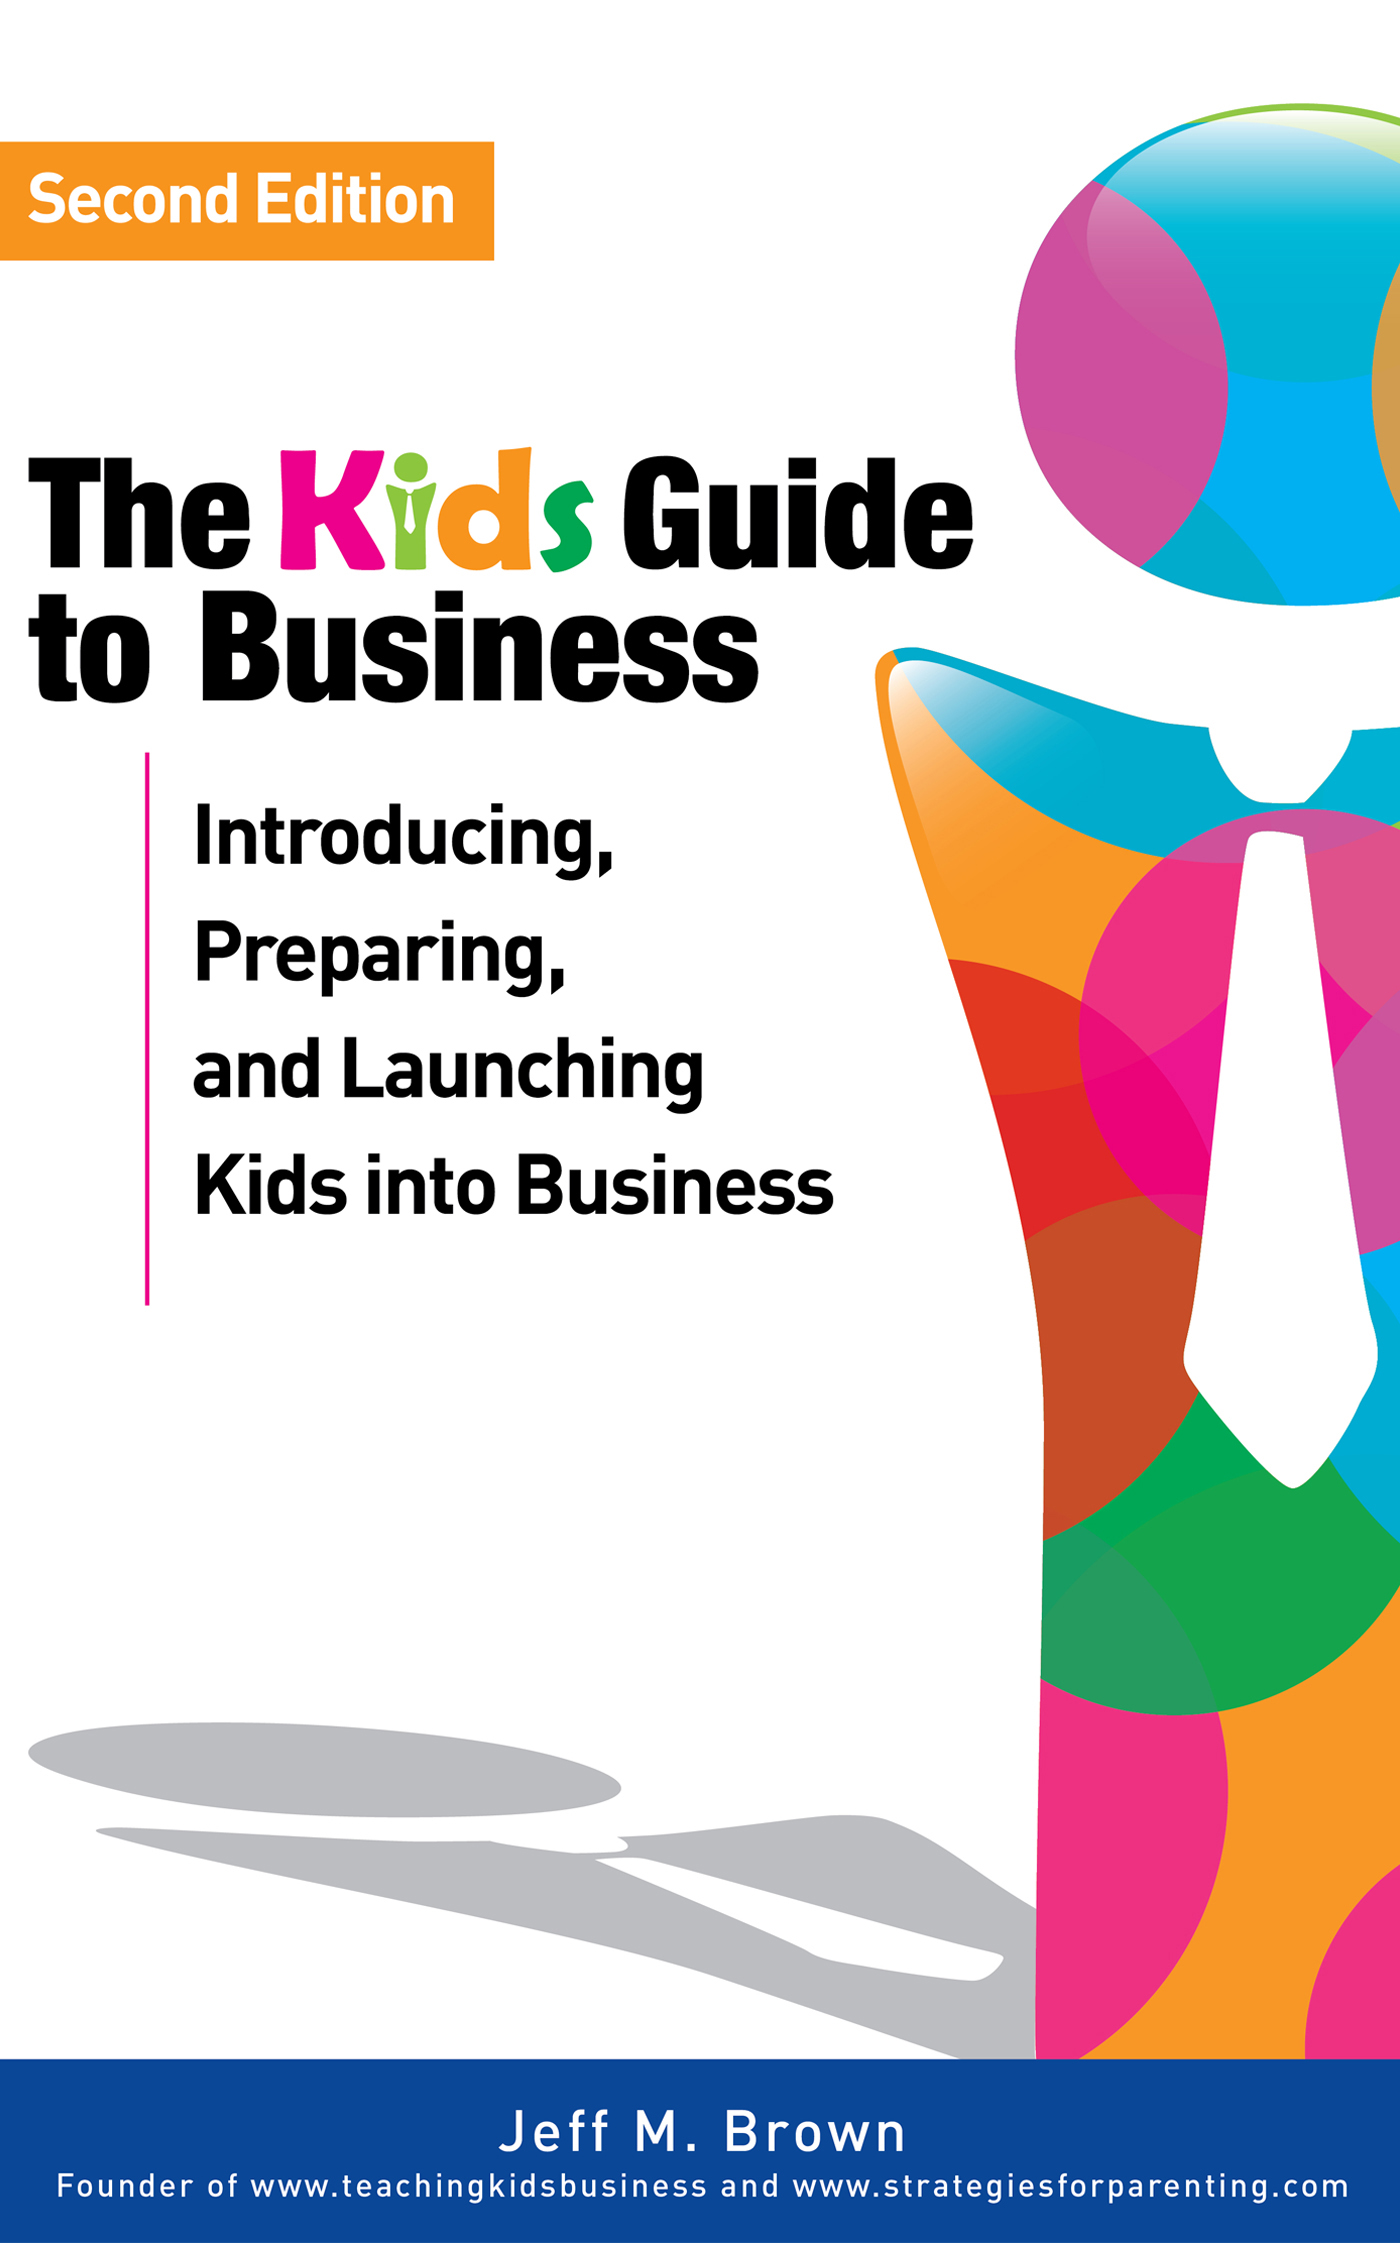 Provides a kid-friendly approach to introduce, prepare, and launch kids into business. Kids take steps to develop a business. Kids are easily engaged in business as they explore business basics, and advanced business principles, using the lemonade stand business case. Many skills and much experience is taught from this simple business model of a road side kiosk.  The author acts as a business advisor, helping kids explore business ideas, learn business principles, develop skills, and gain valuable experience while discovering and preparing for business. This book will be most effective with the assistance of an adult and is written for K-12 or 5-18 years of age.